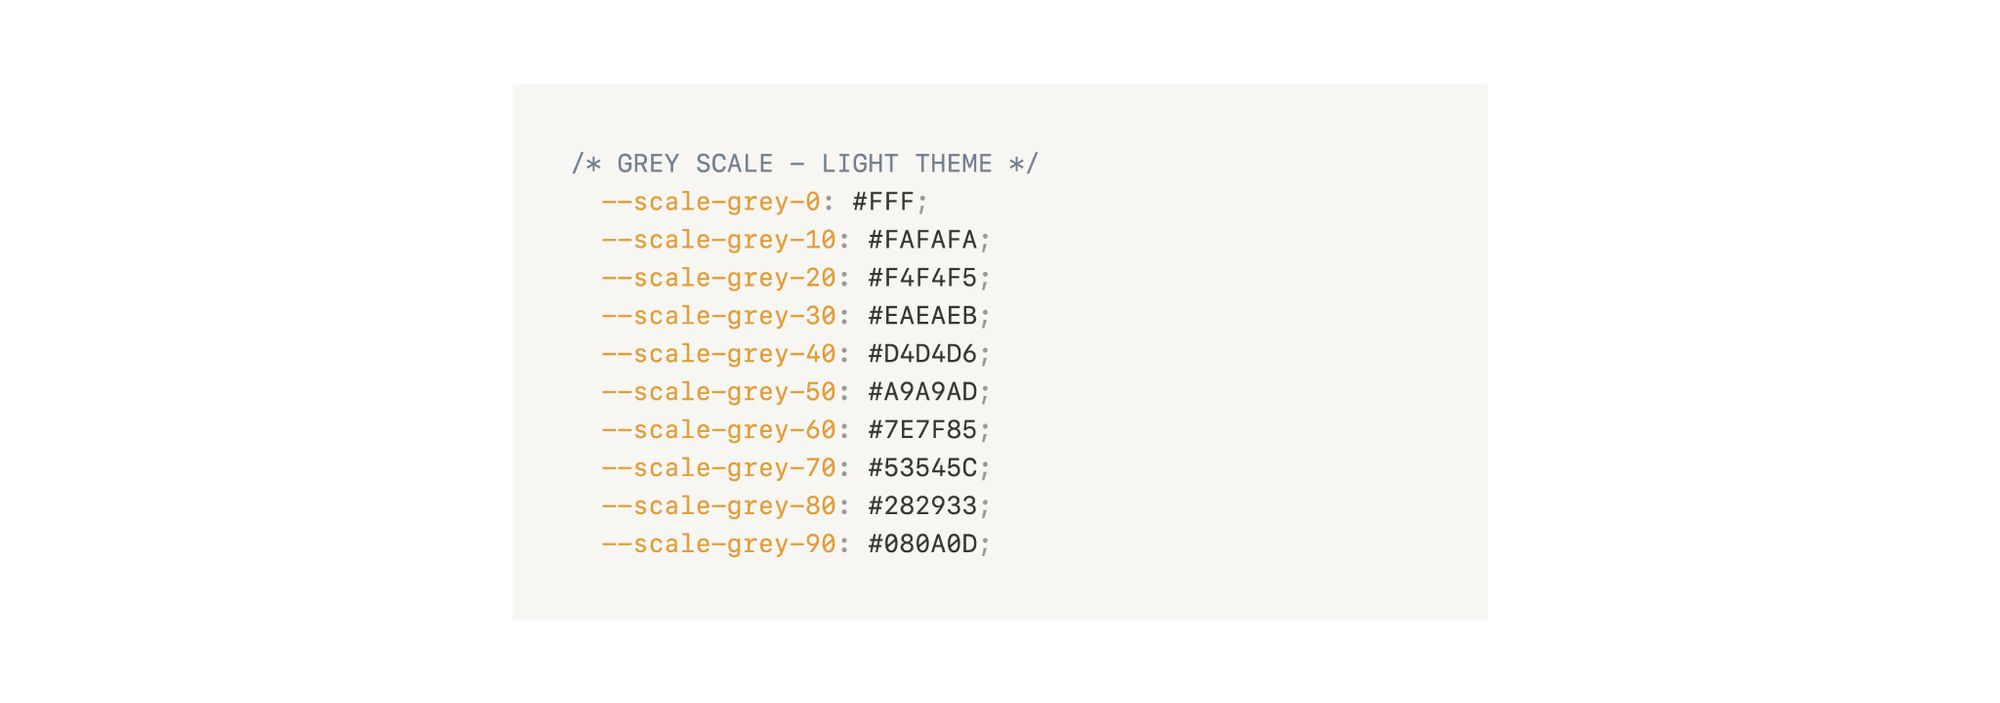 Image of the scale for grey